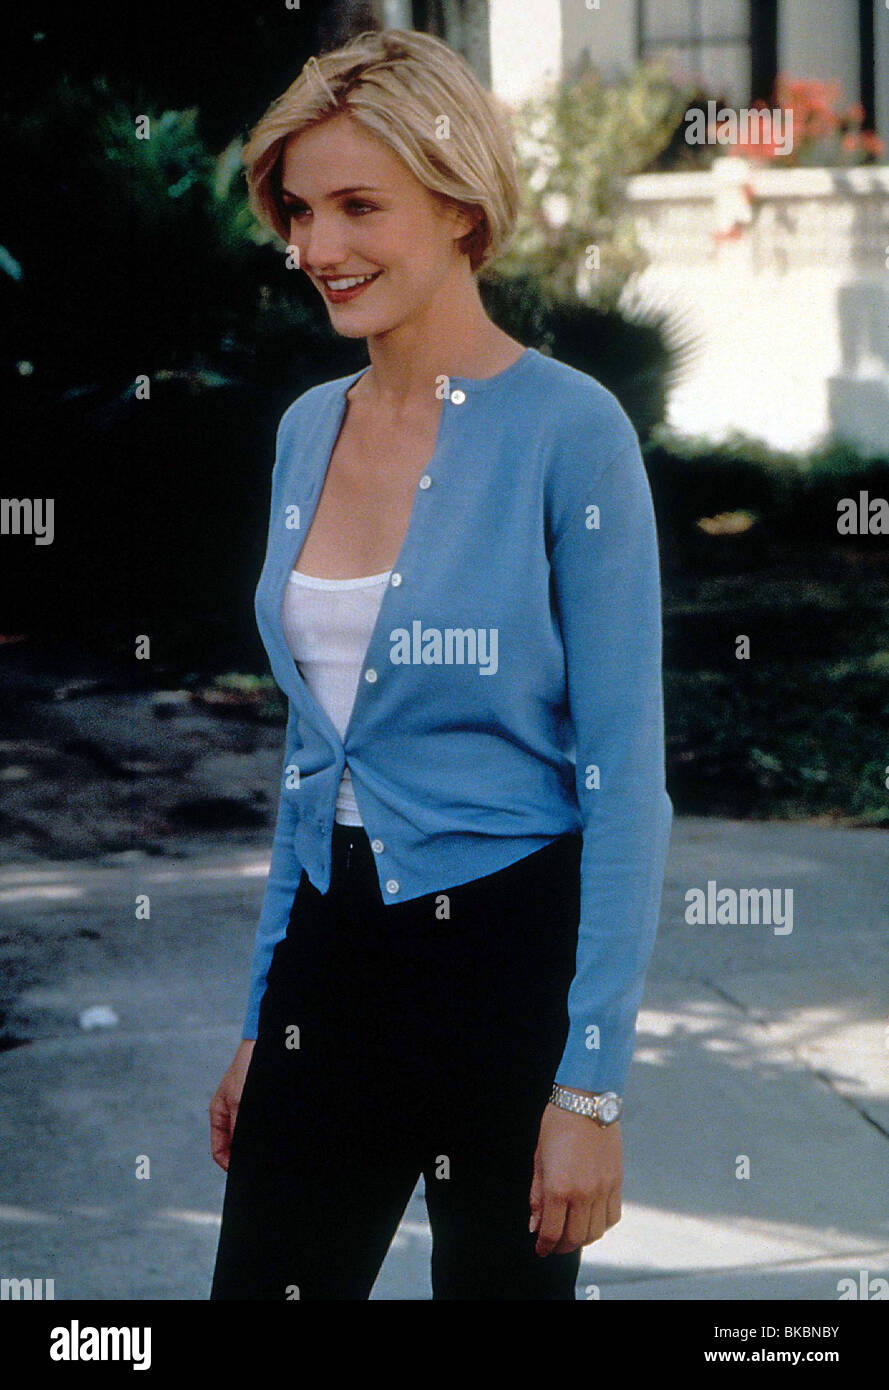 THERE'S SOMETHING ABOUT MARY CAMERON DIAZ TSAM 109 ORIGINAL 35MM - Stock Image